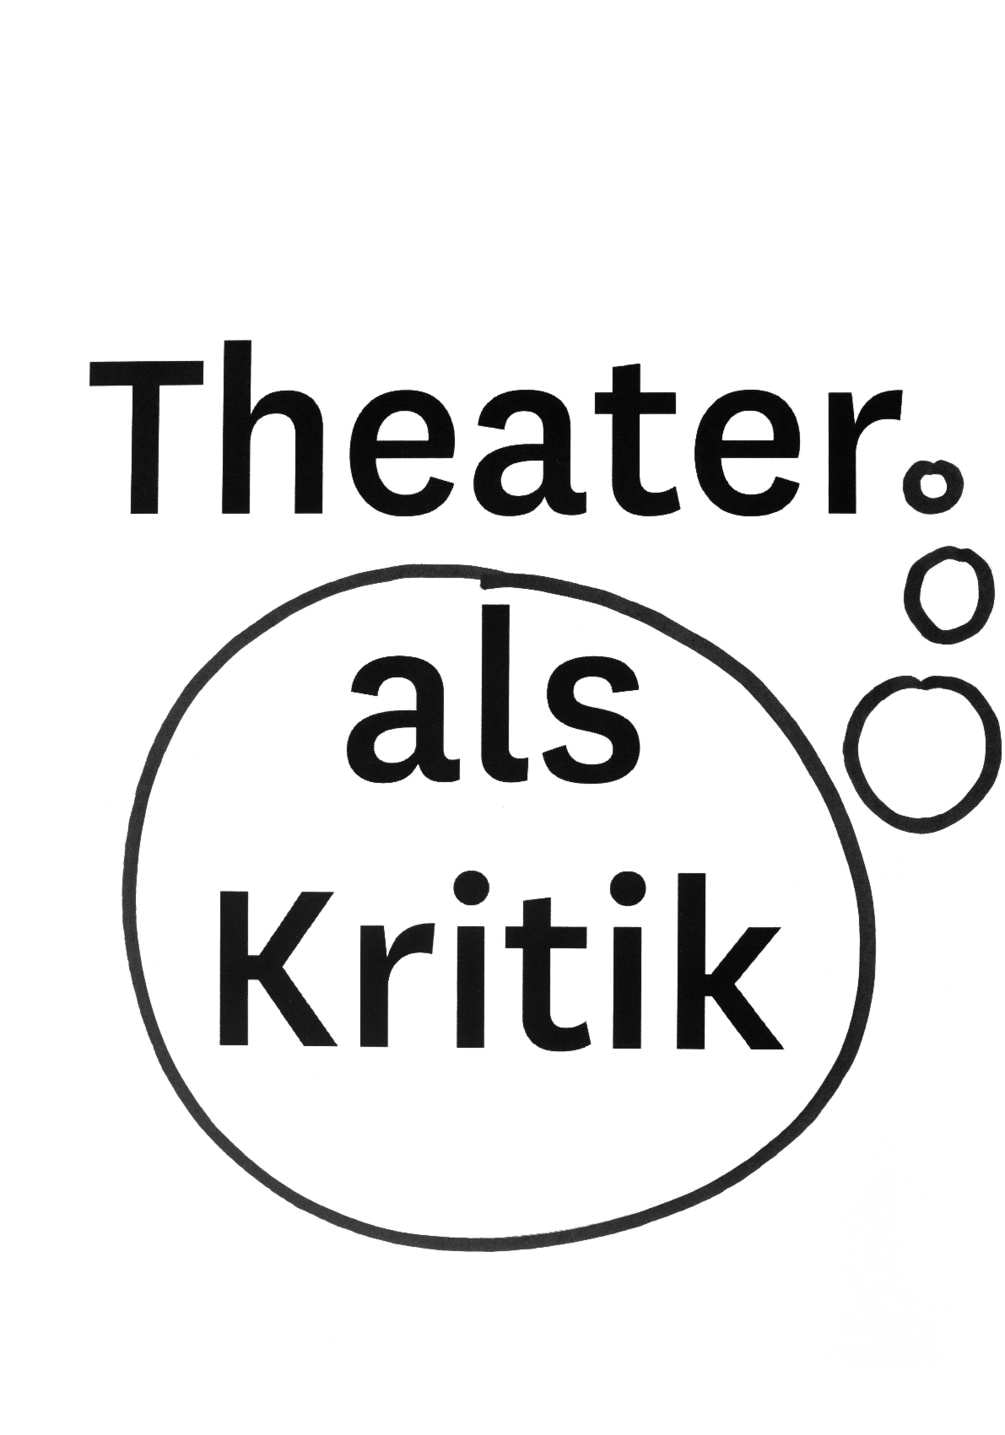 theater-as-critique-slip-29-1005x1435px